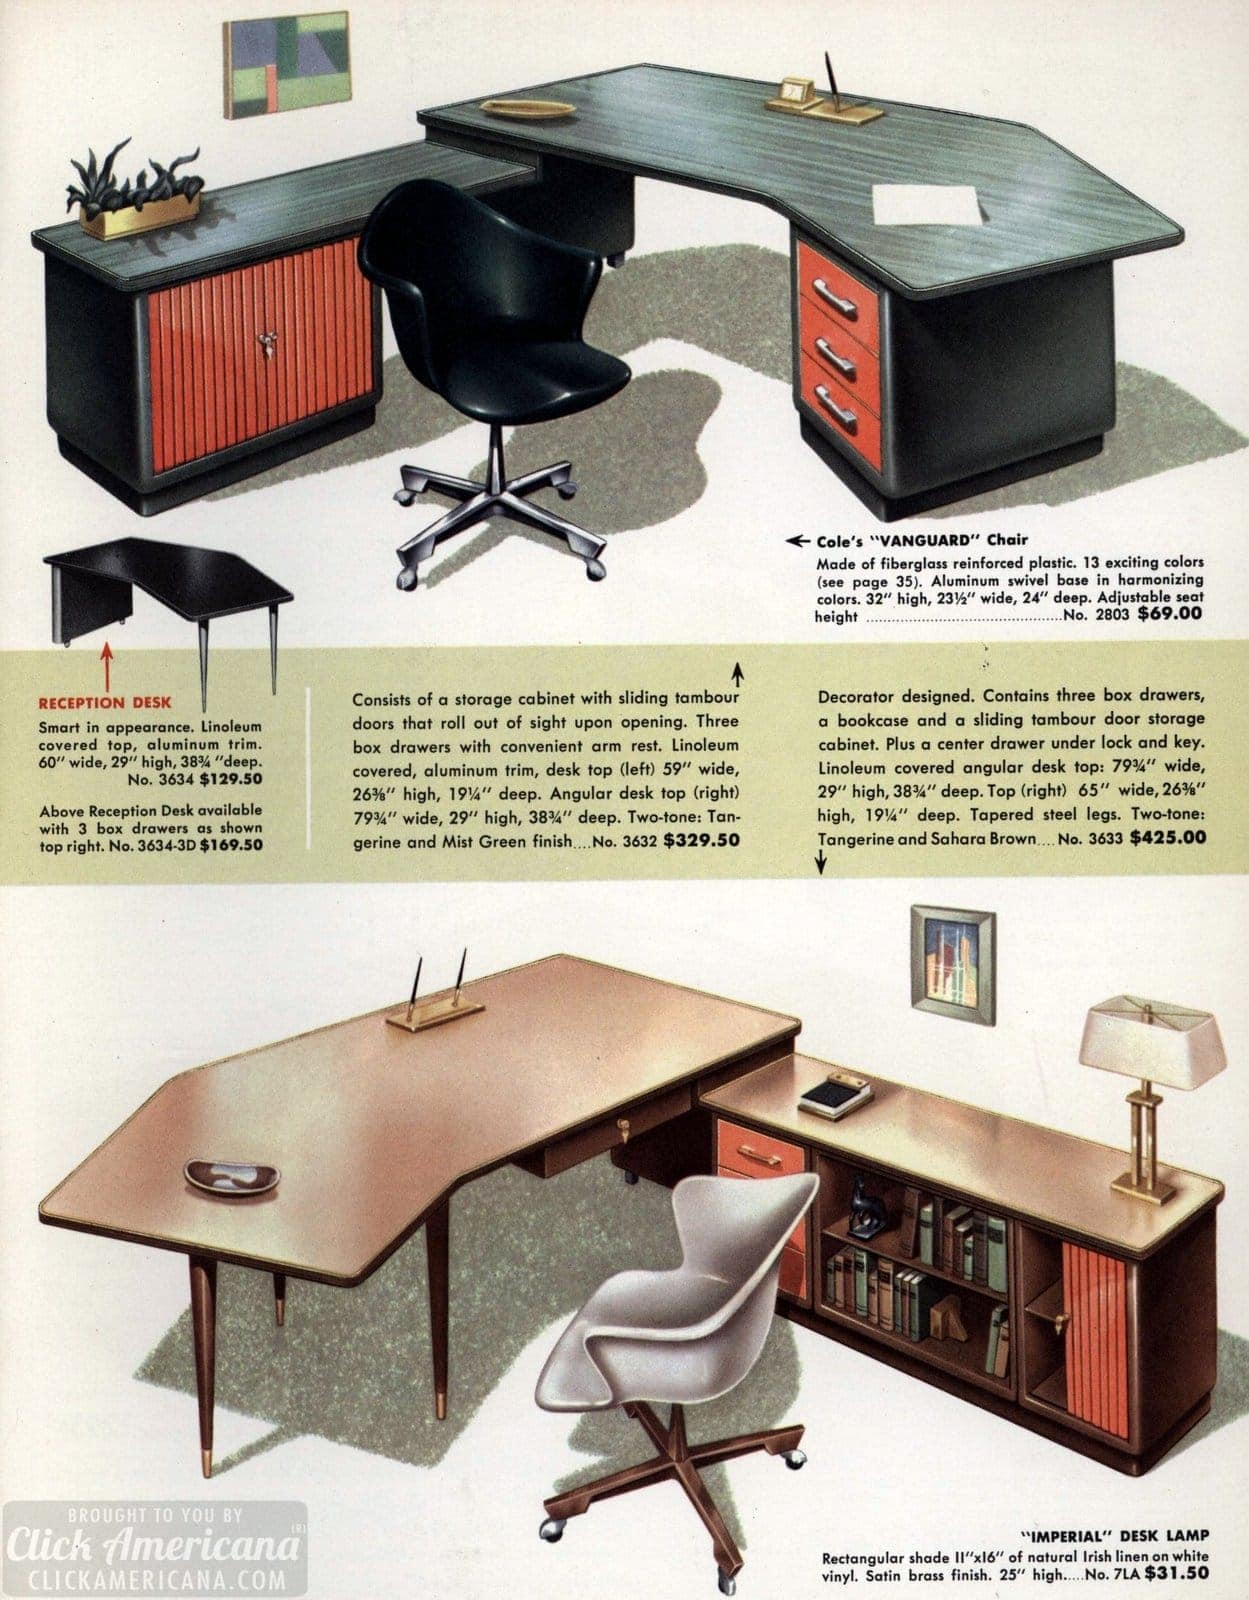 Exceptionnel Mid Century Modern Retro Office Desks From 1959   Click Americana (4)